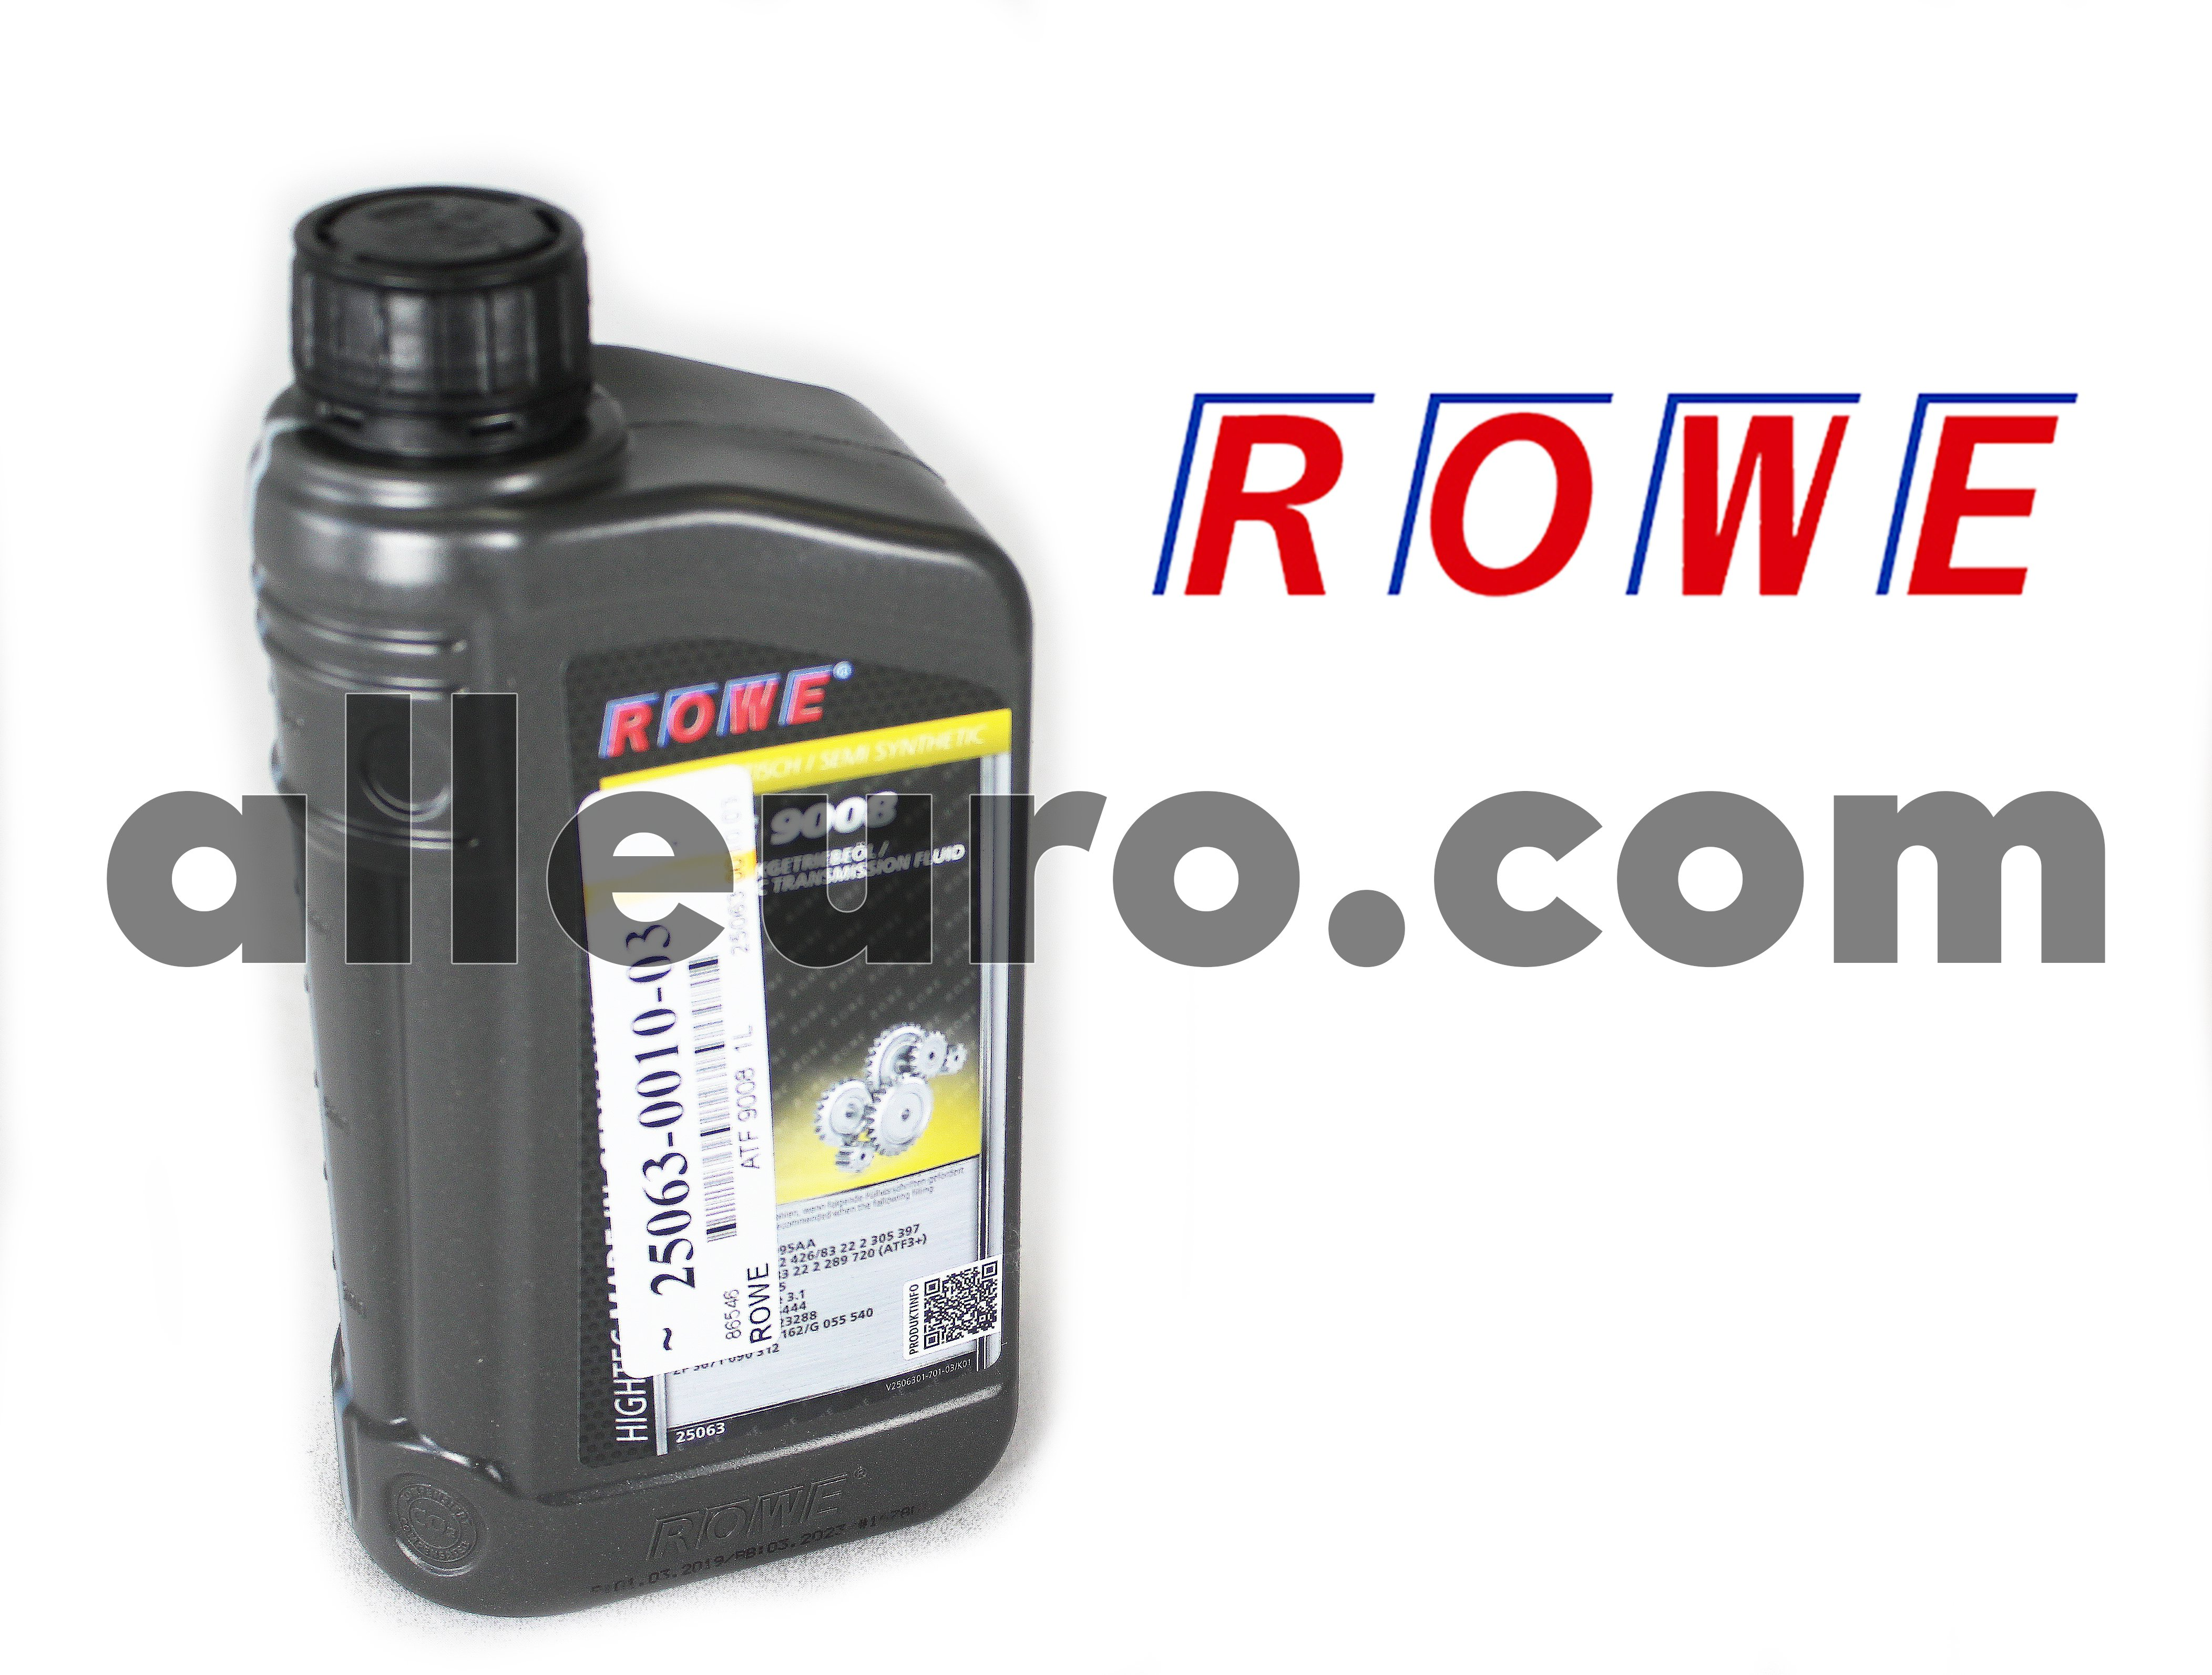 ROWE Automatic Transmission Fluid 1 Liter 25063-0010-03 - ATF 9008  1L